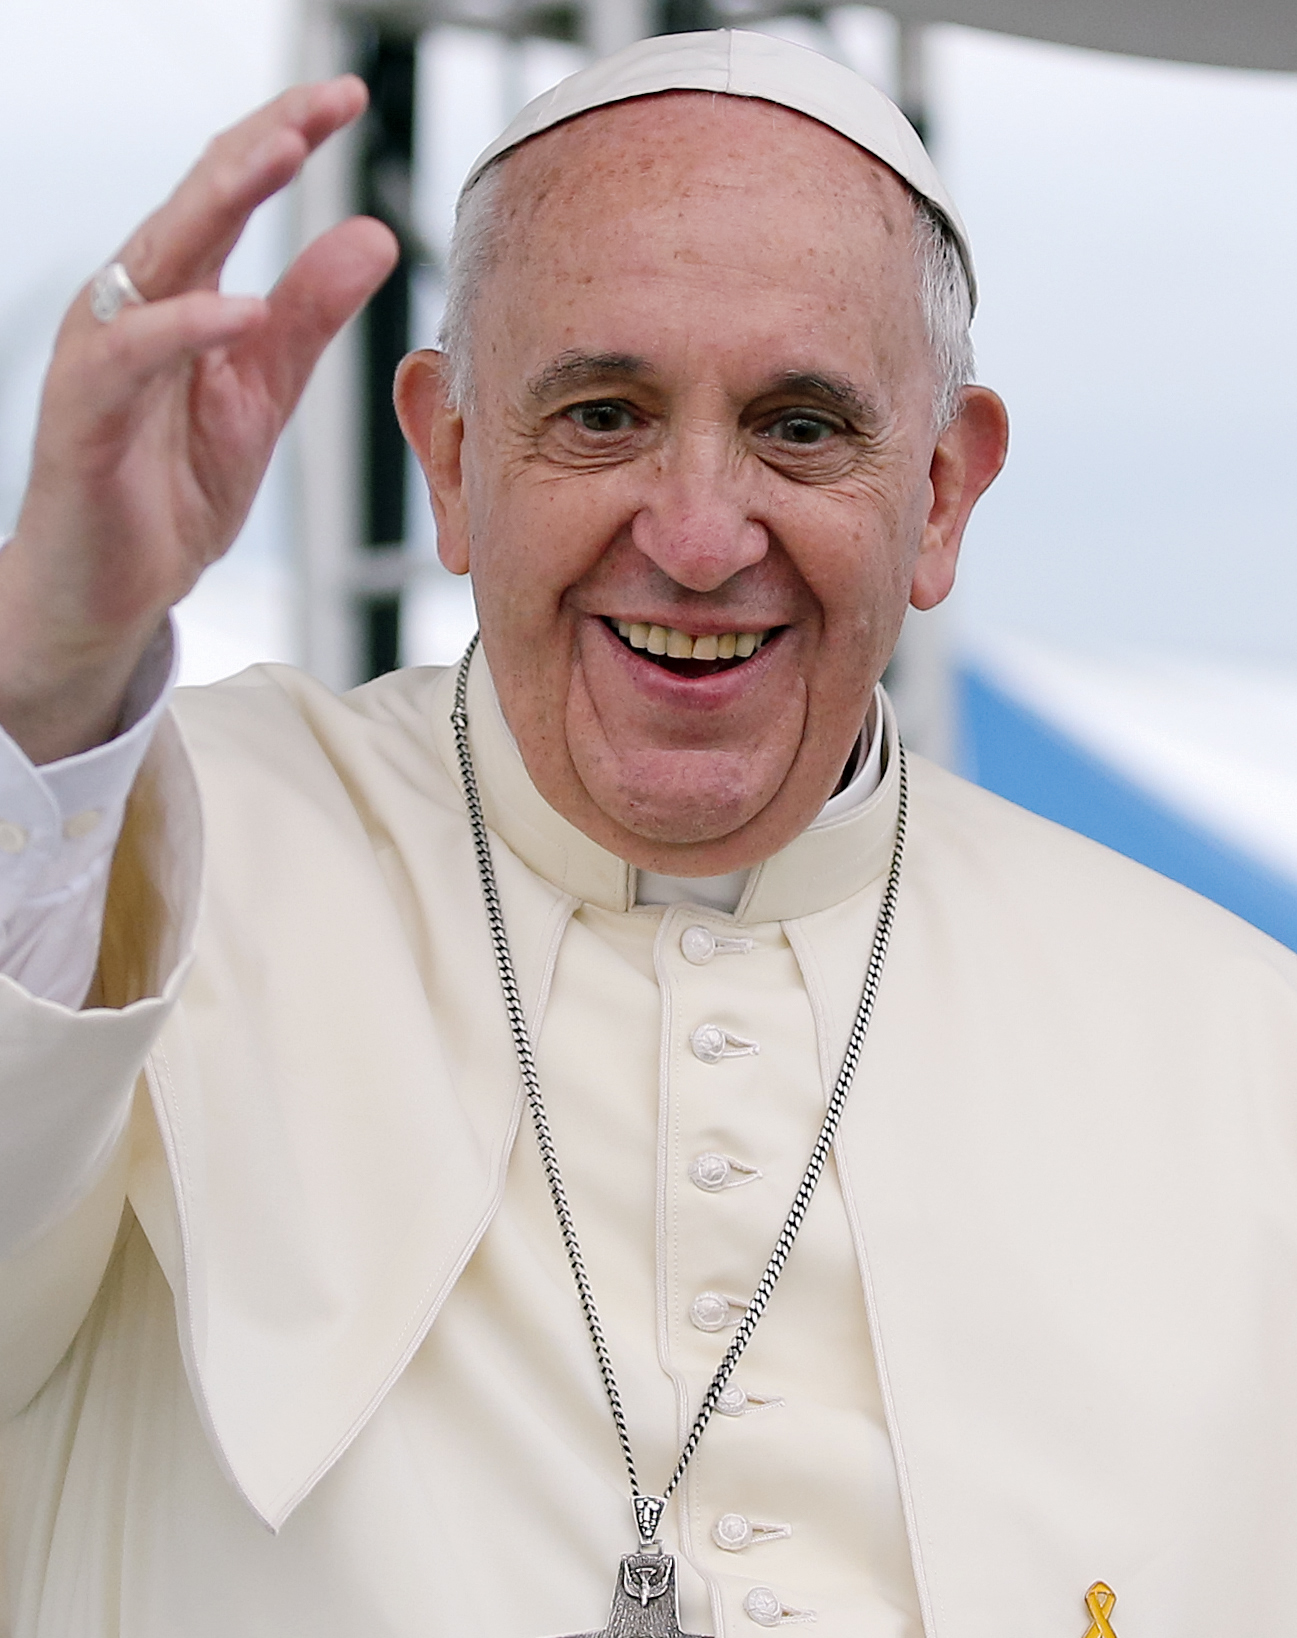 The 81-year old son of father Mario Jose Bergoglio and mother Regina Maria Sivori Pope Francis in 2018 photo. Pope Francis earned a  million dollar salary - leaving the net worth at 25 million in 2018